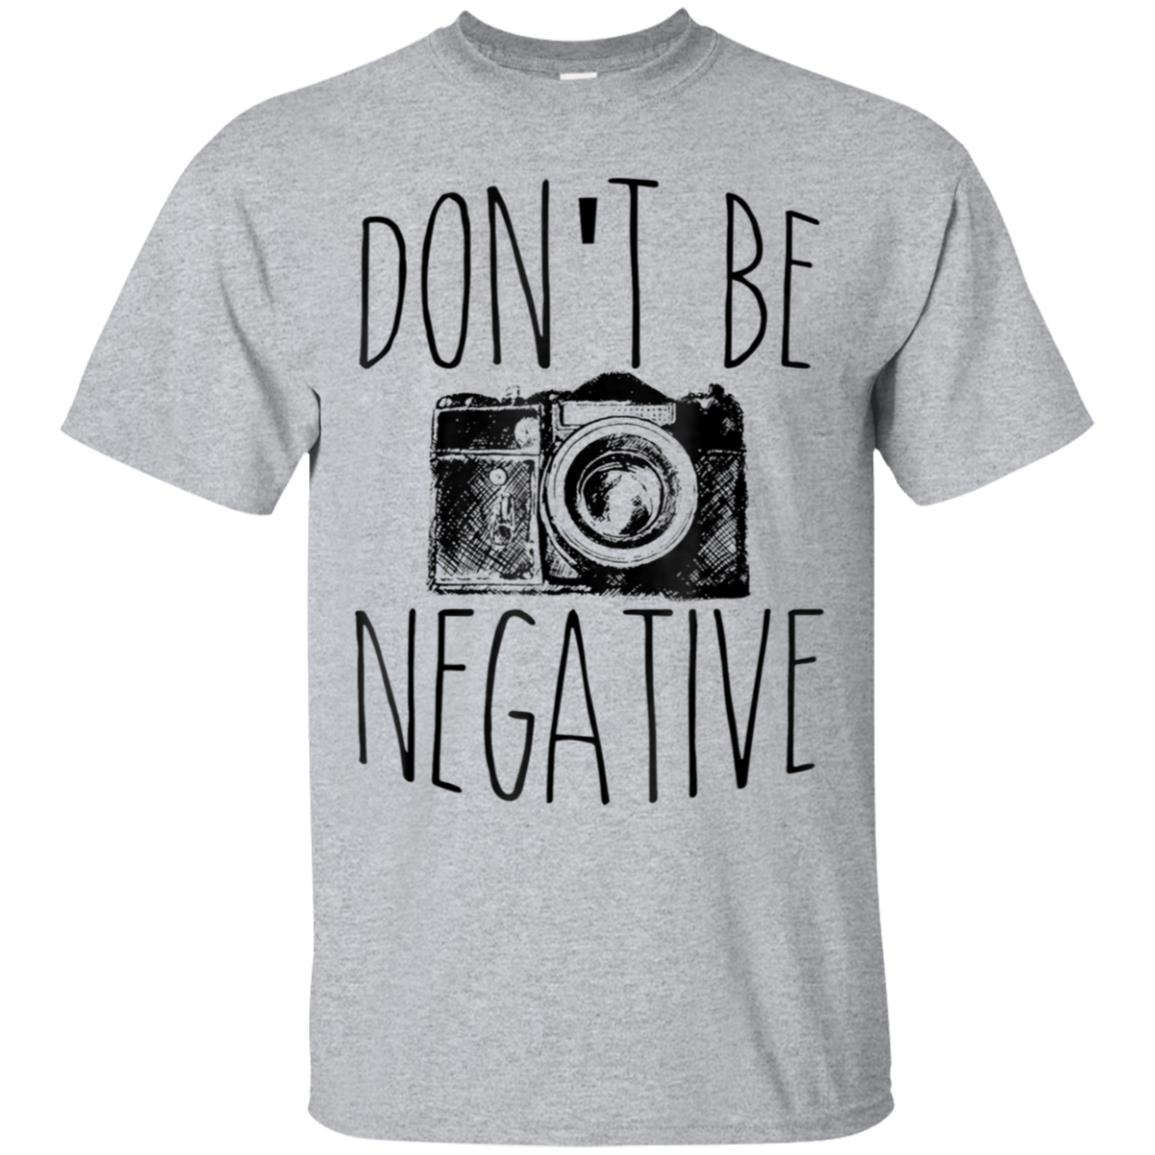 Don't Be Negative Funny Photography T-Shirt 99promocode